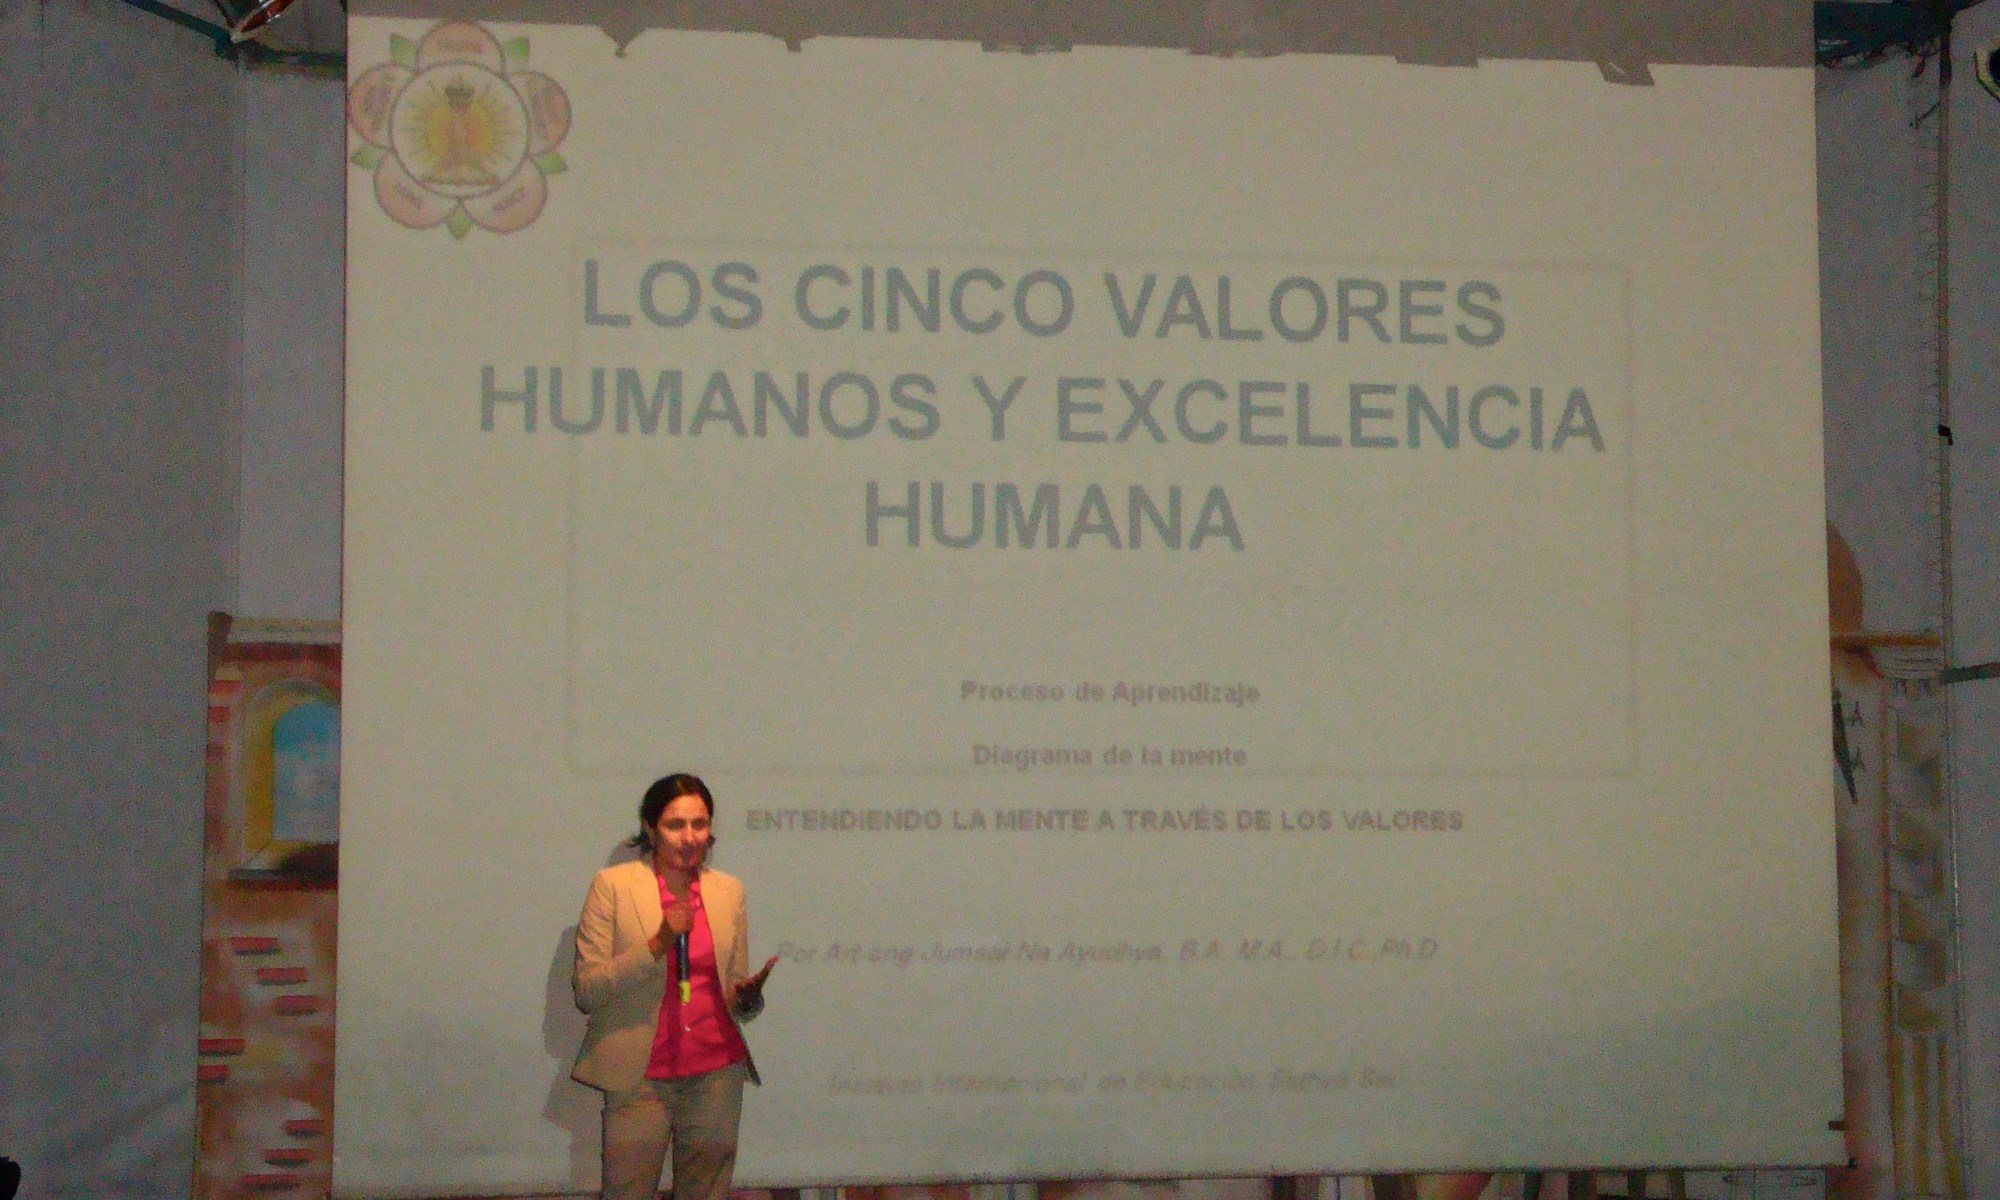 cinco valores humanos